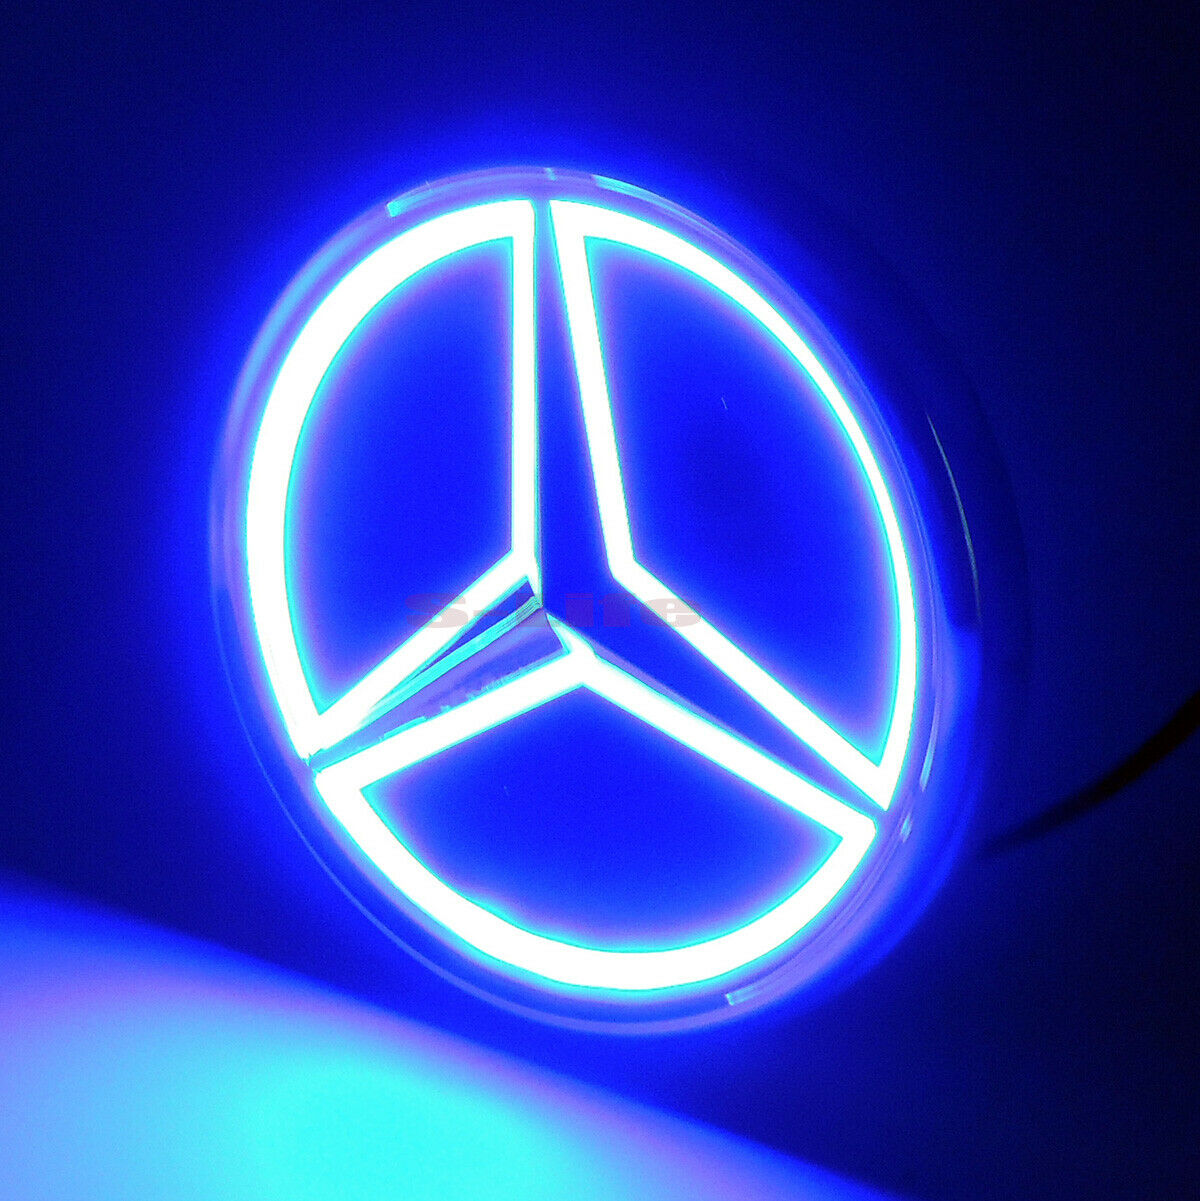 Details about 5D LED Car Tail Logo Blue Light Badge Emblem Light For  Mercedes.